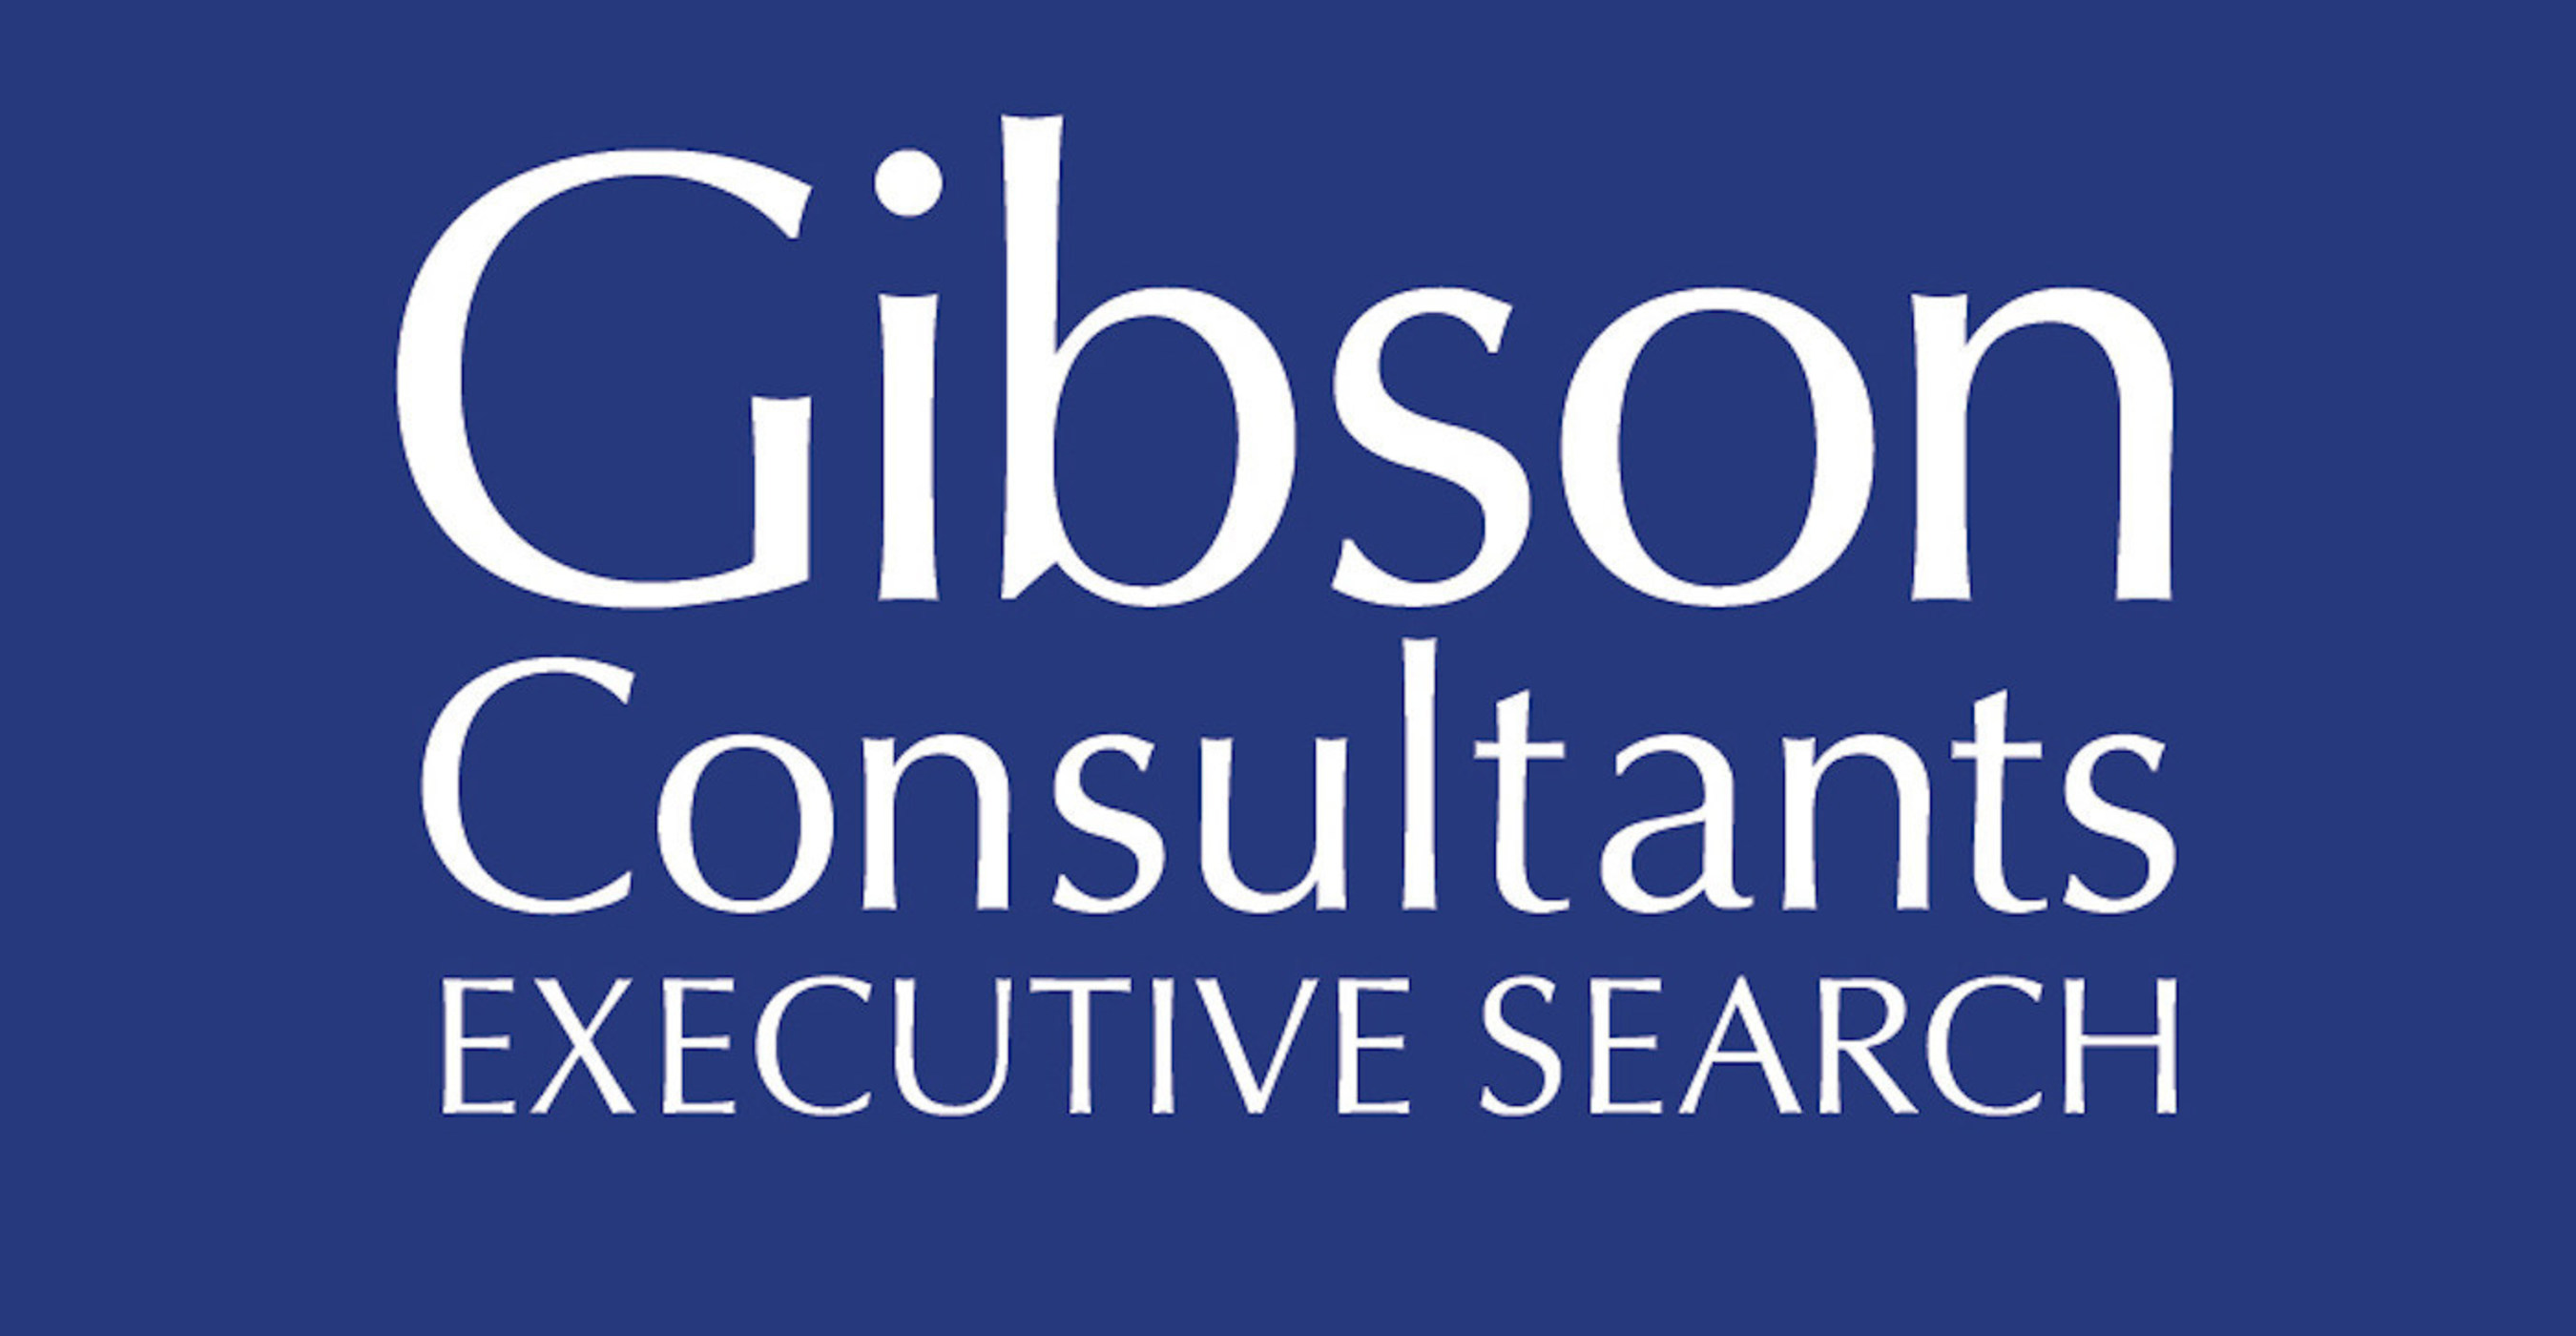 Gibson Consultants, an executive search firm specializing in digital health and technology-enabled health service companies, helps clients throughout the US and Canada build executive, management, and sales teams. Its client list includes some of the most respected and innovative companies in health IT.